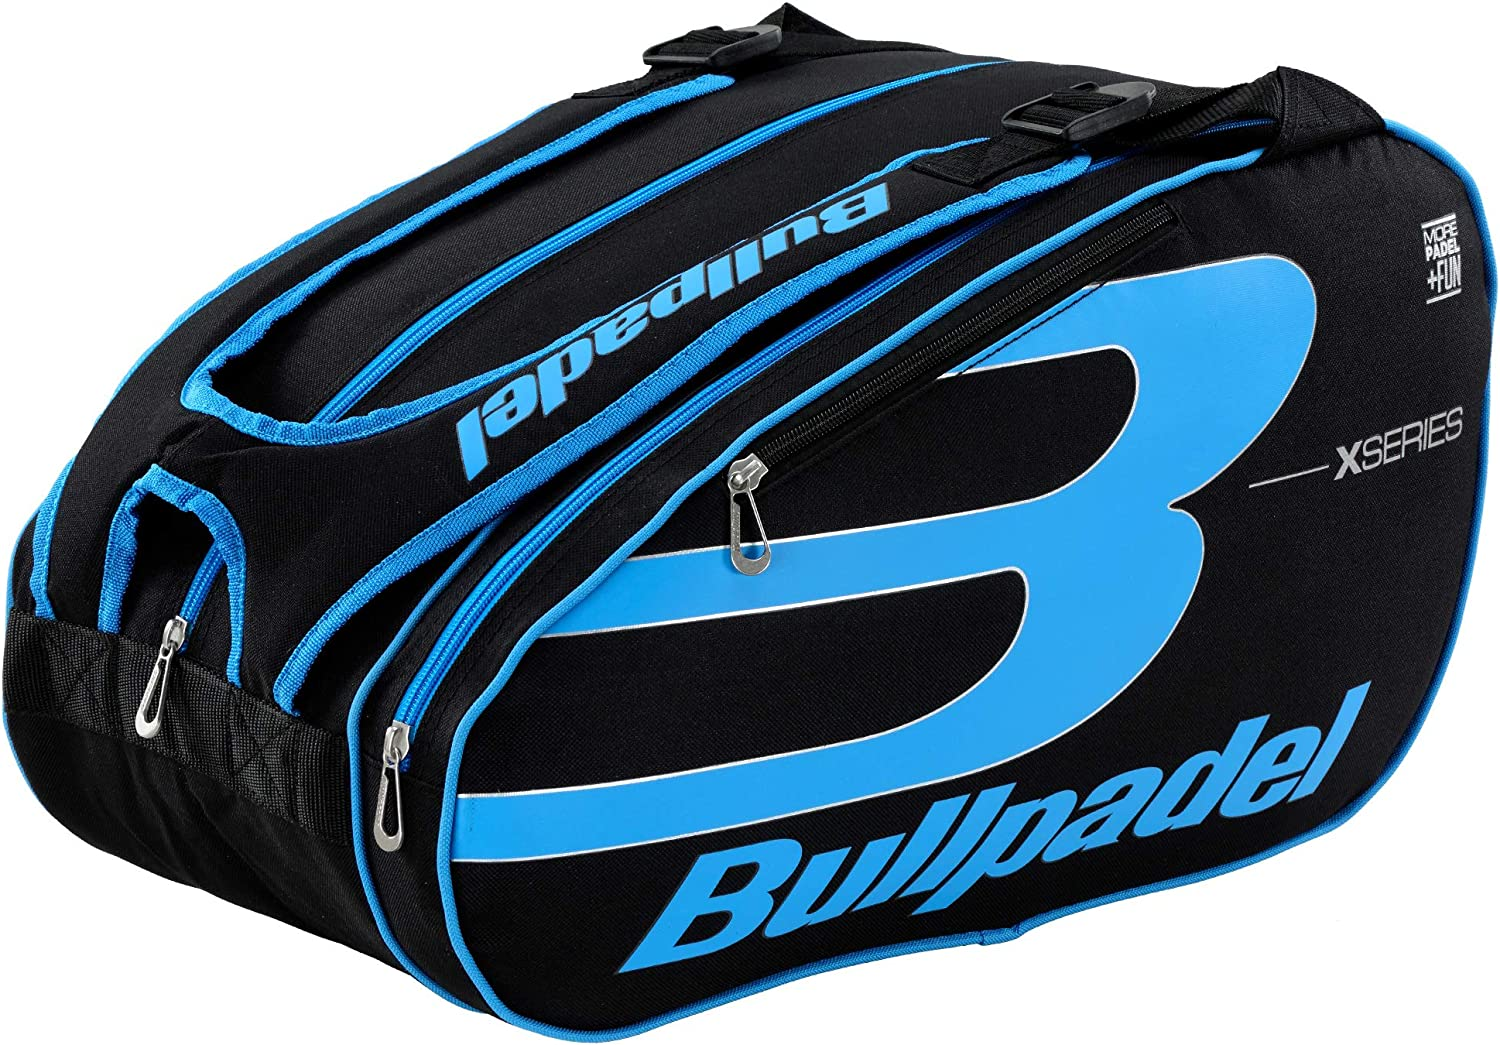 Paletero Bullpadel Fun X-Series Blue: Amazon.es: Deportes y aire libre